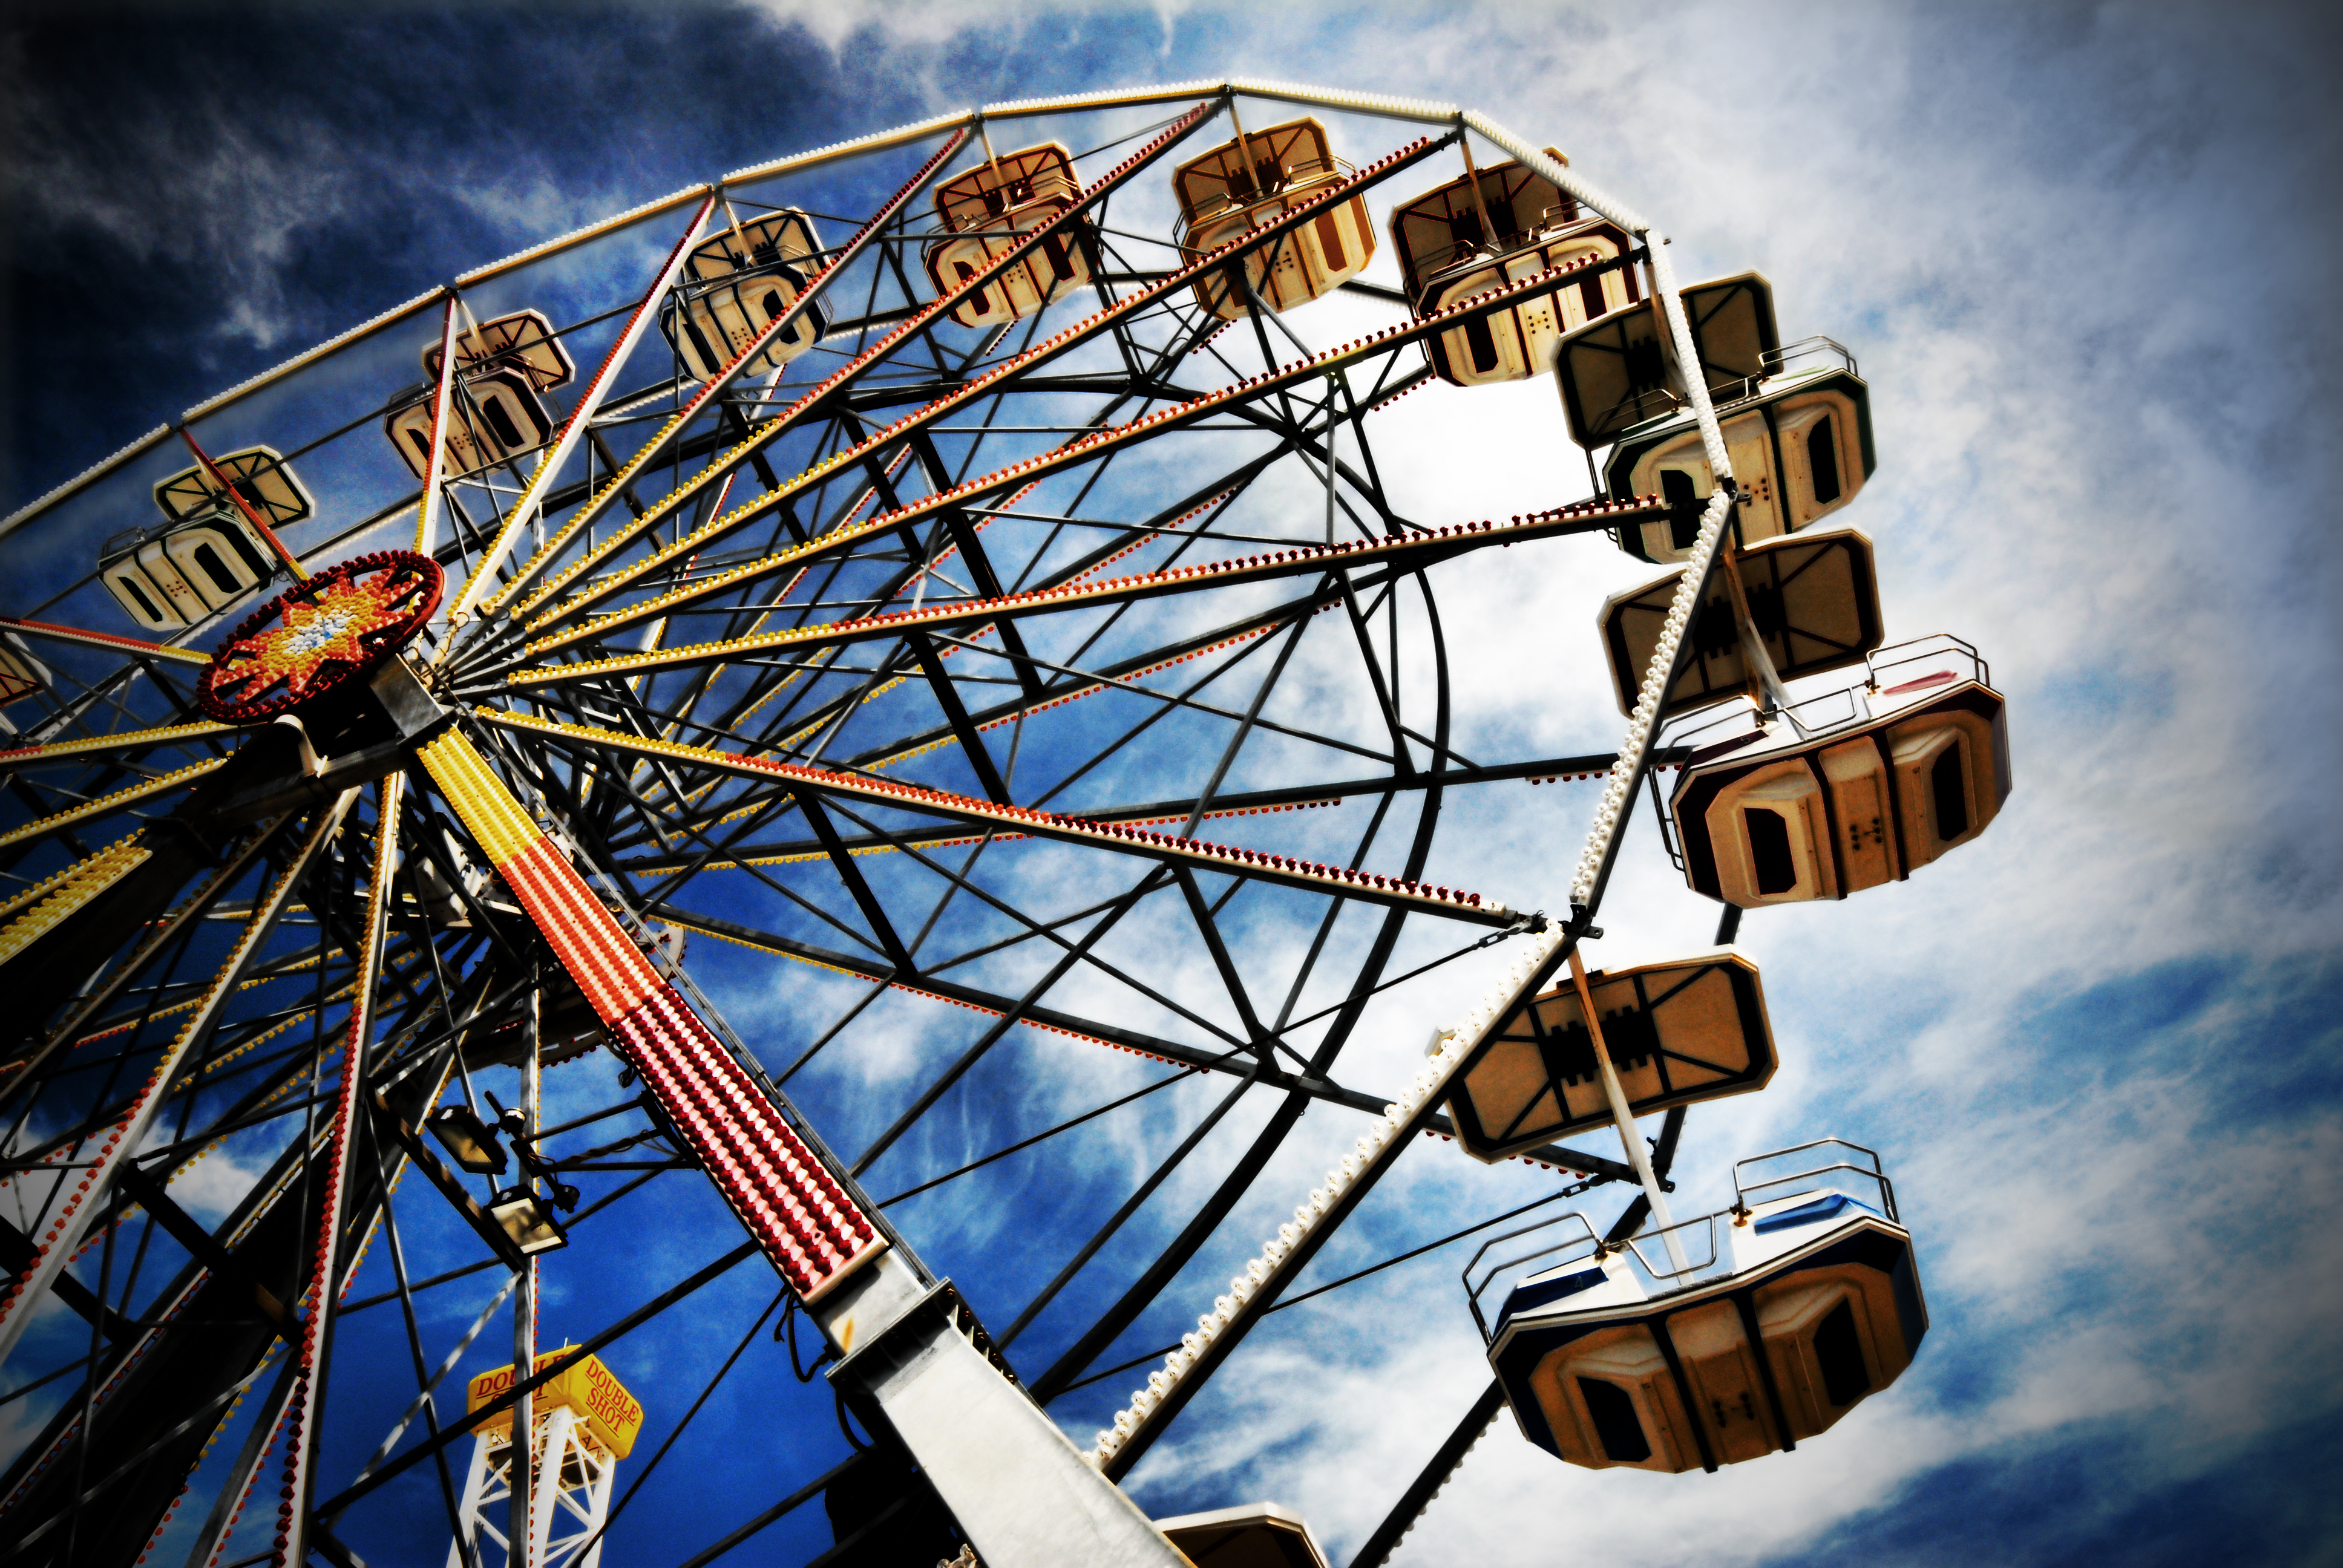 Ferris Wheel - Topics - Breitbart.